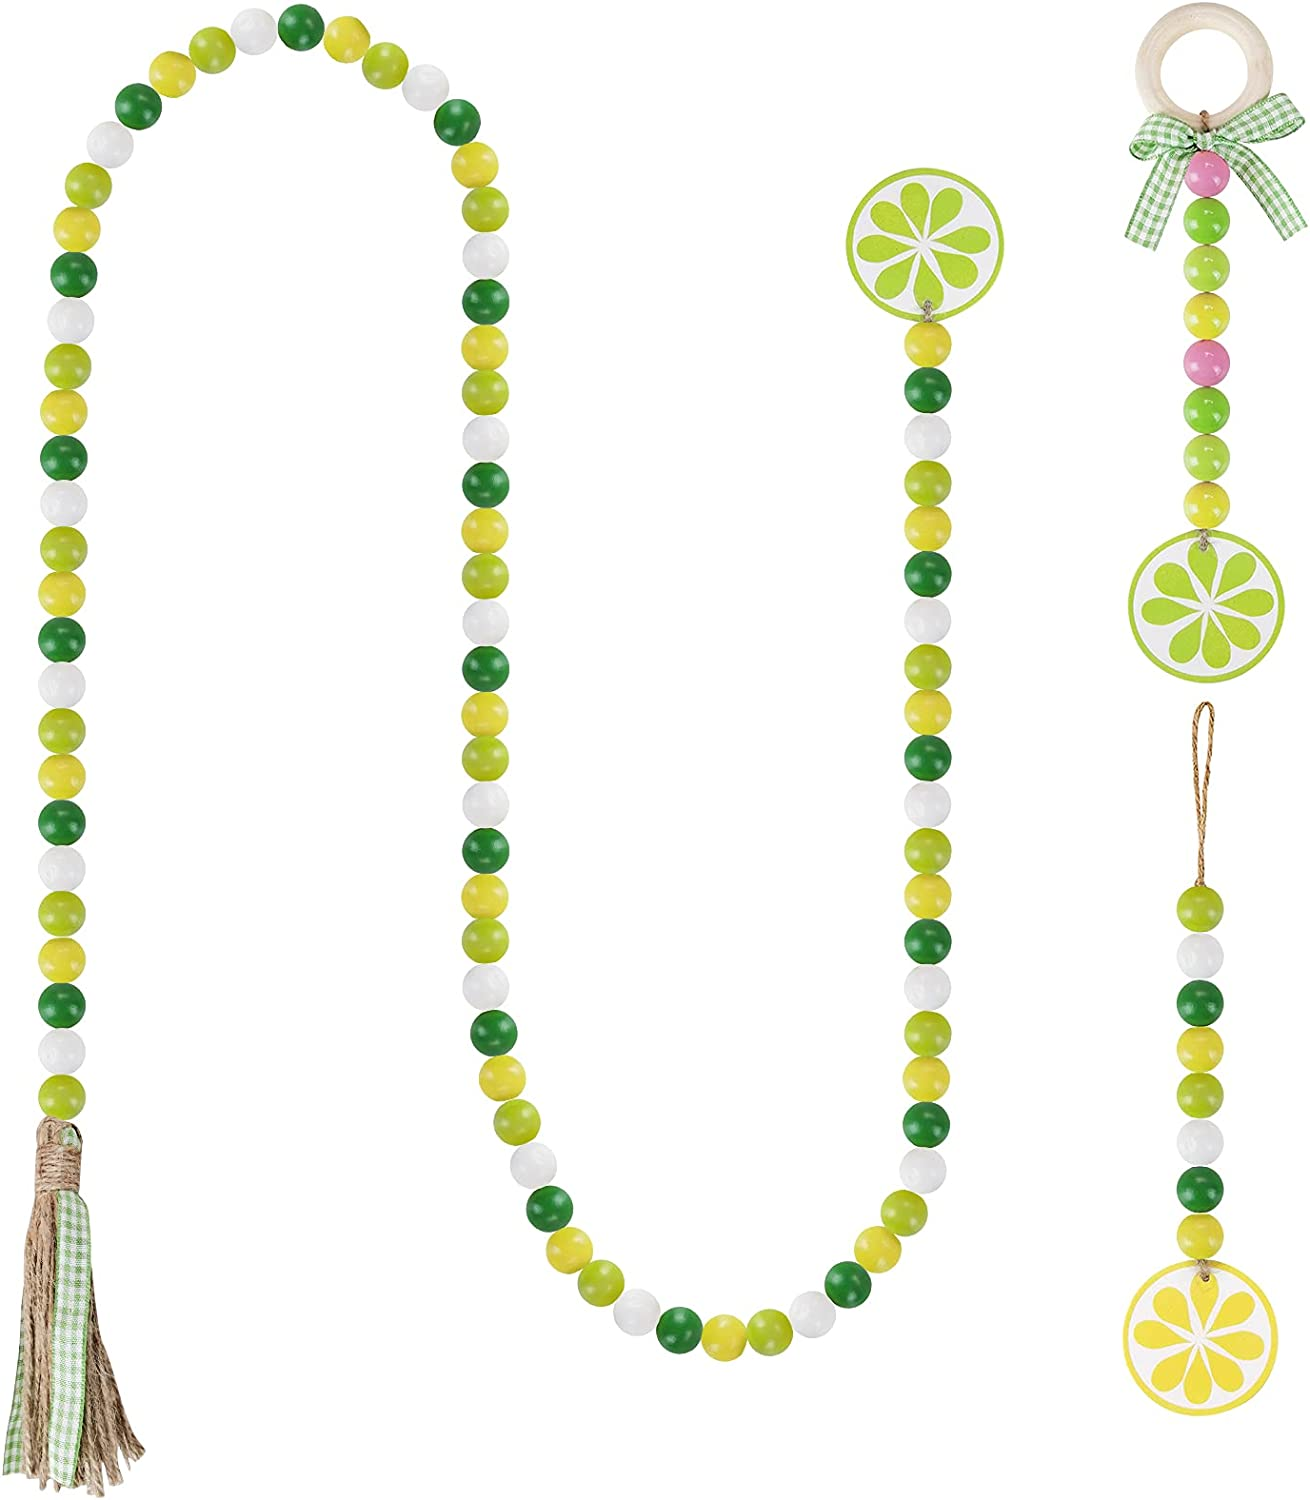 Cieovo 3 Pieces Oklahoma City Mall Lemon Wood Bead Tassels R Free shipping anywhere in the nation Garland with Farmhouse